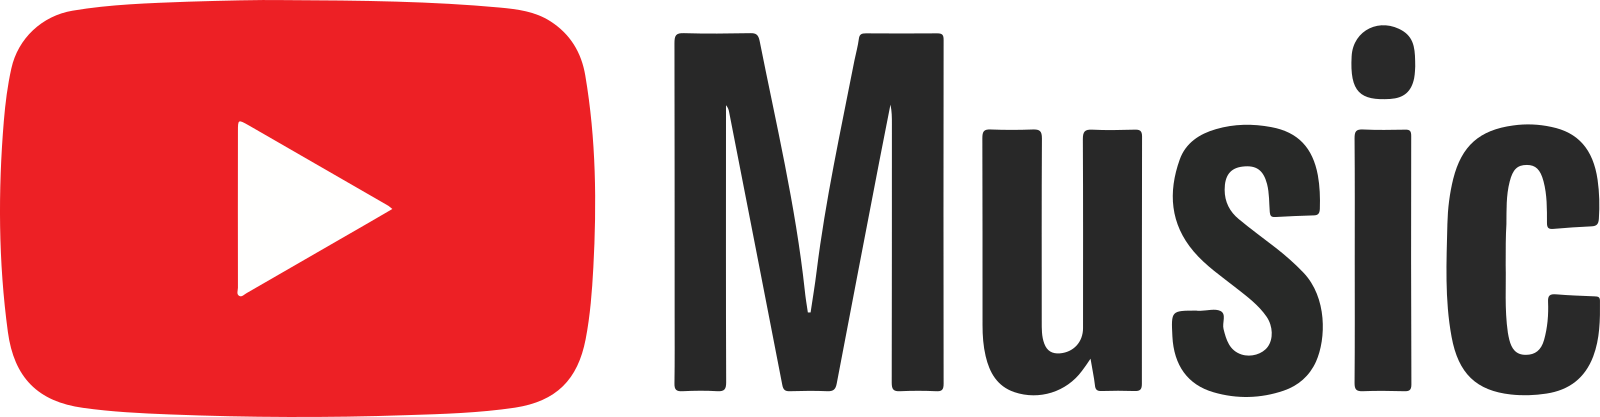 youtube music logo 6 - Youtube Music Logo